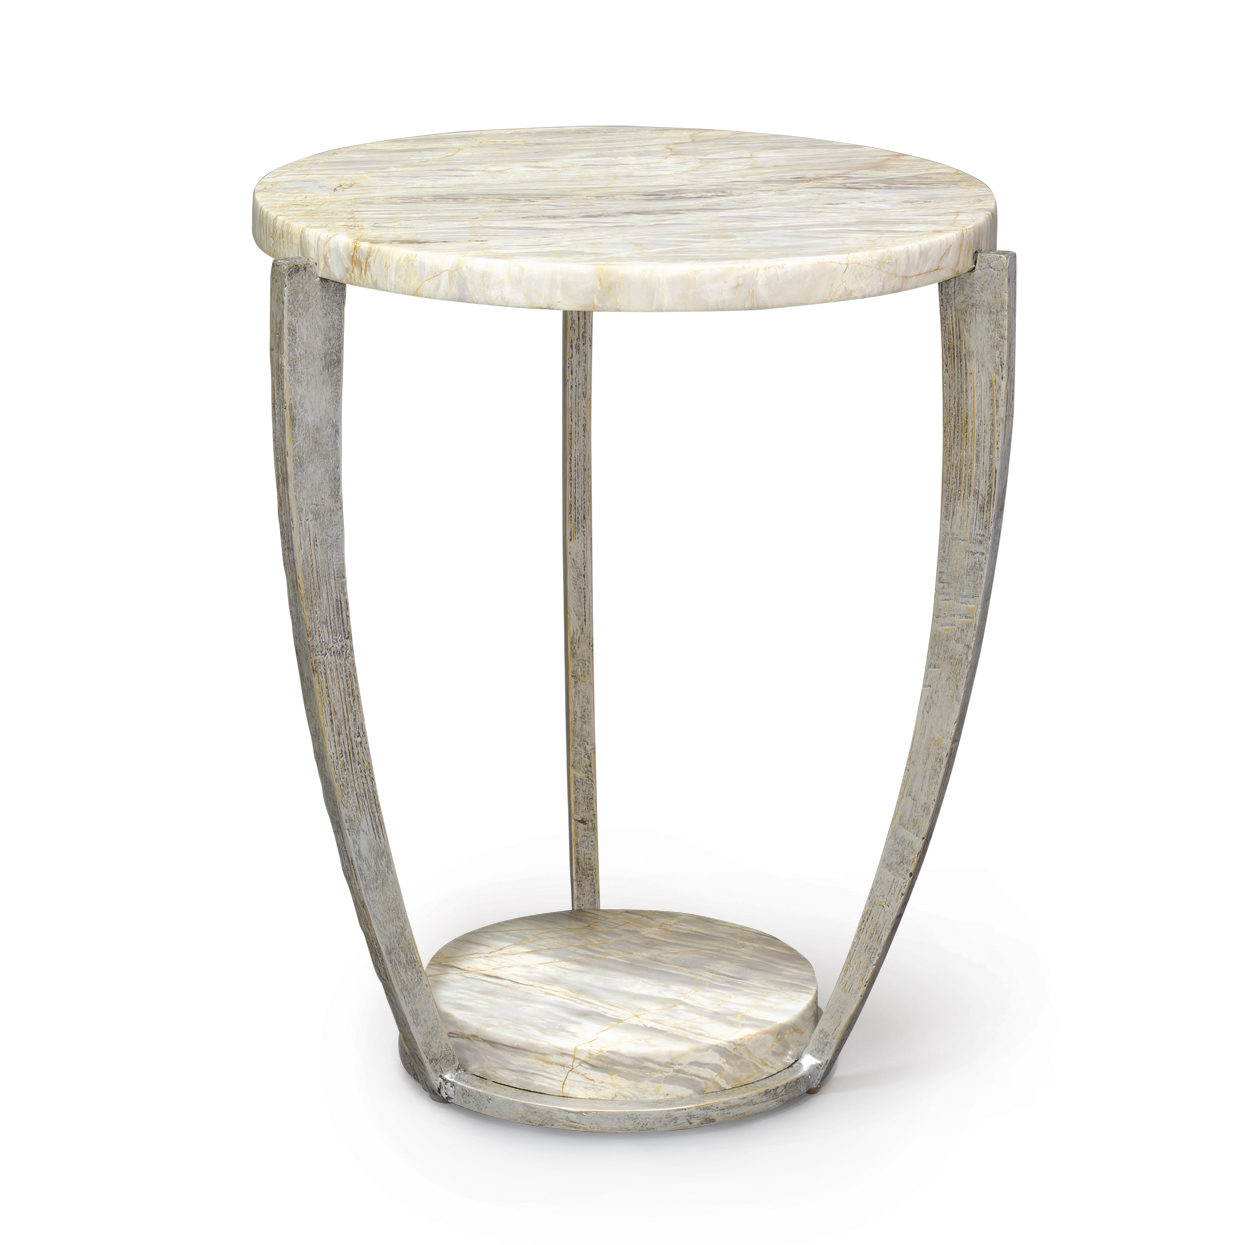 exciting marble accent table set bistro threshold top wood round small antique and faux killian target metal black white nero full size cherry ikea toy storage unit hollywood